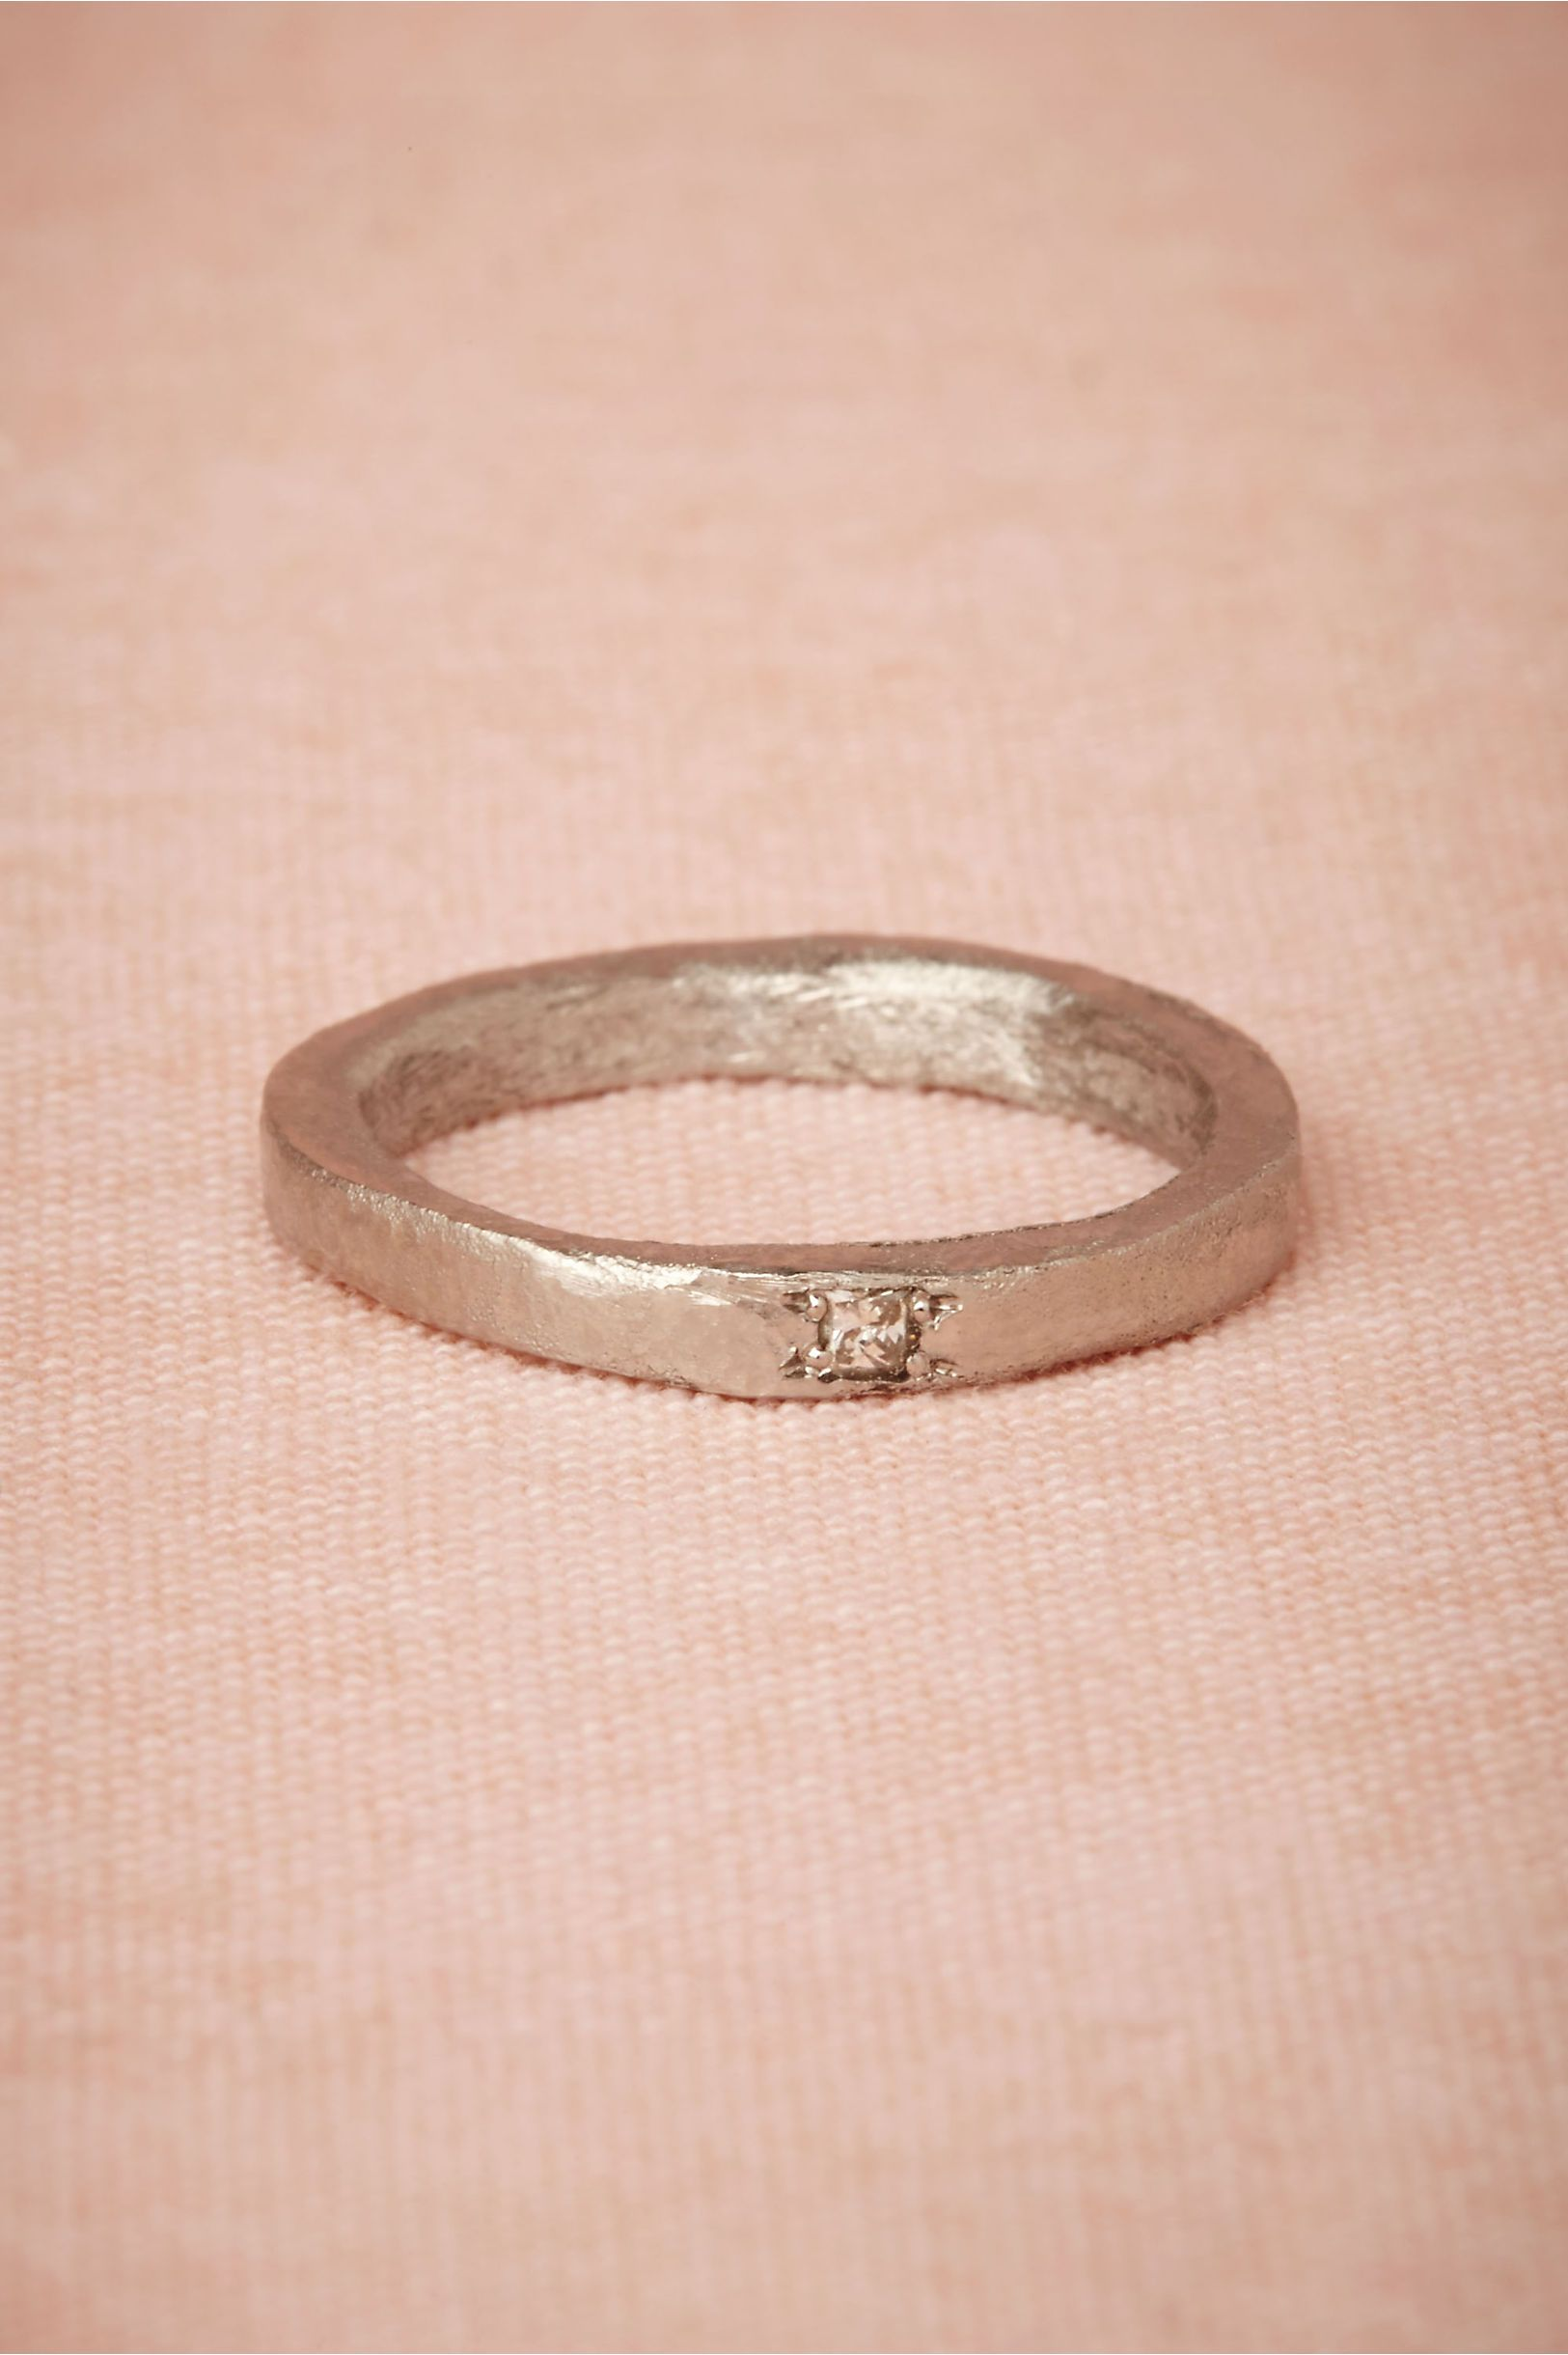 Carina Ring in Bride Bridal Jewelry Rings at BHLDN | Jewelry ...